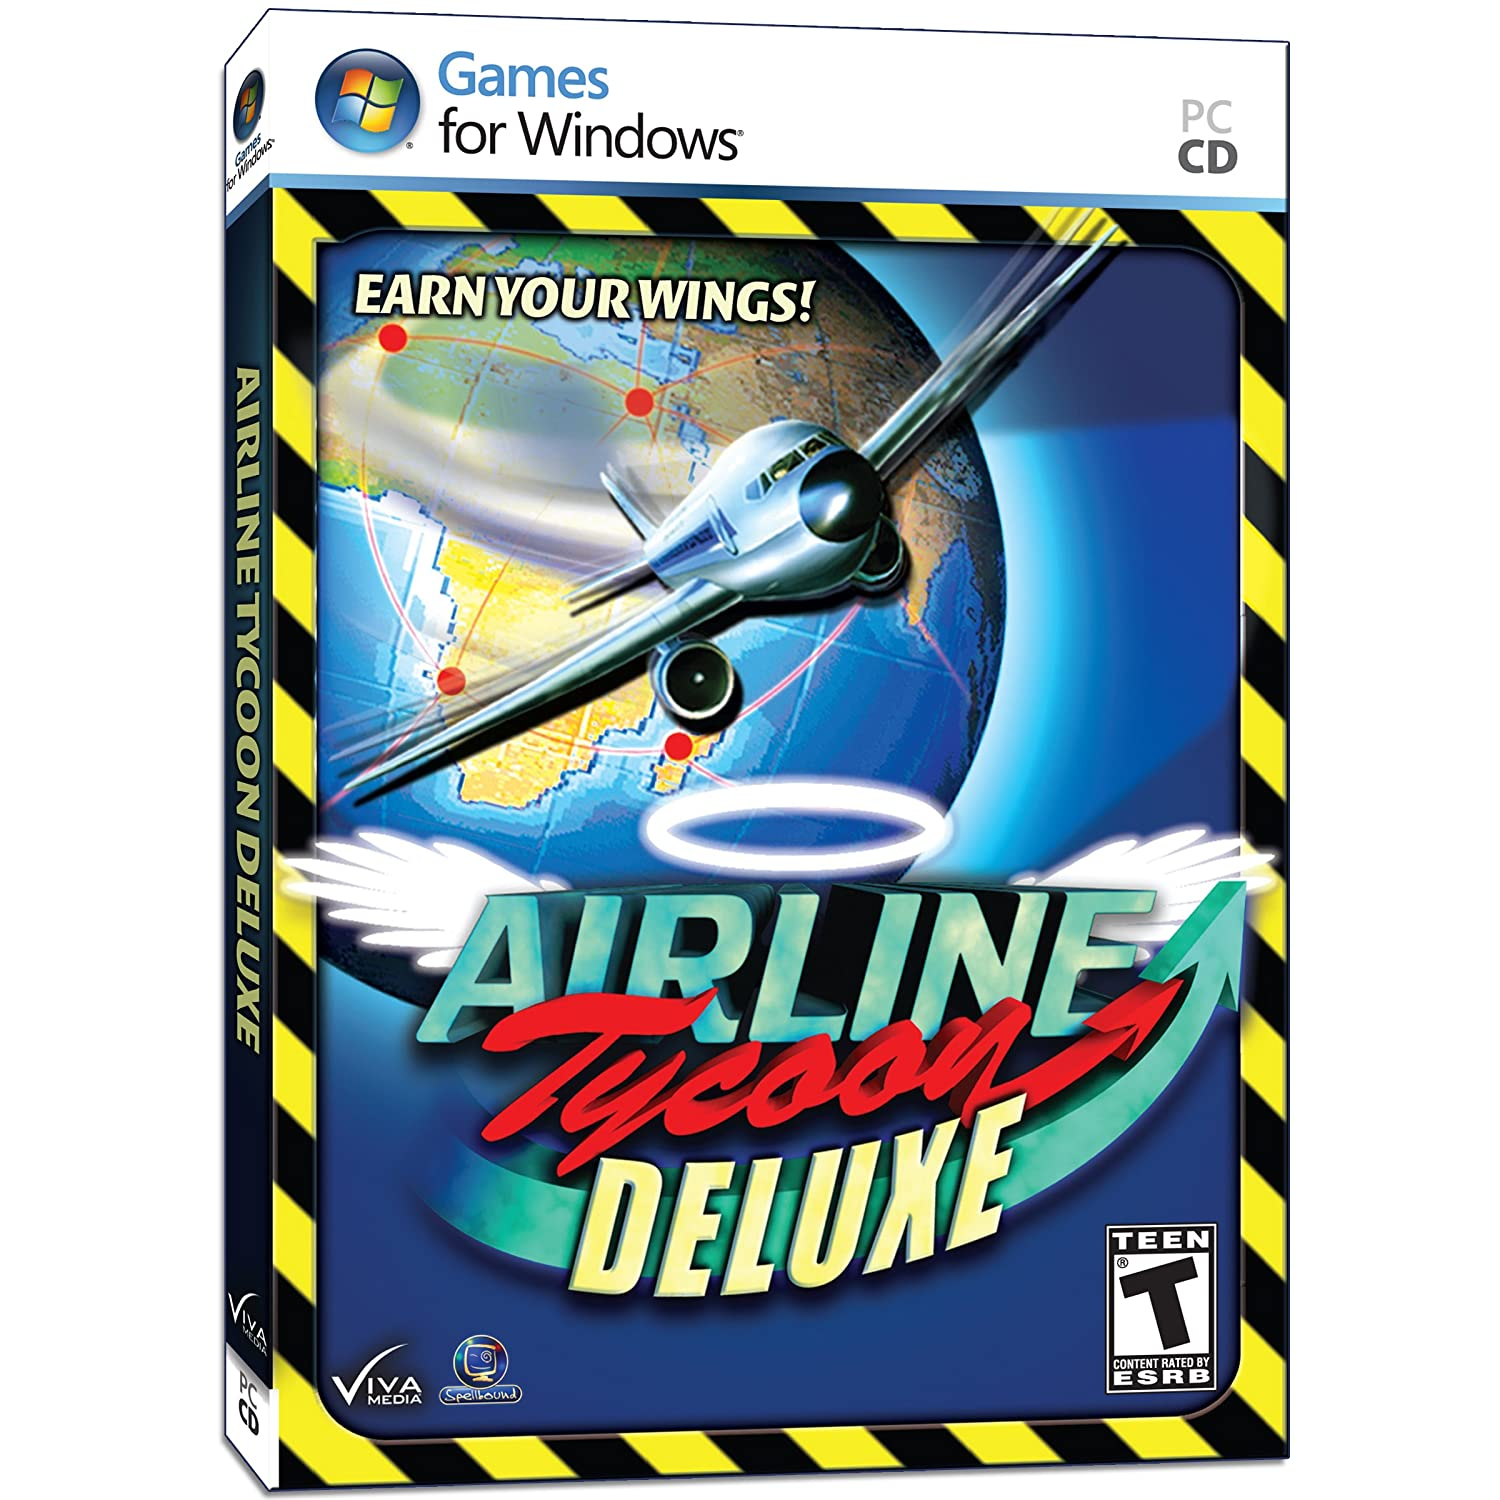 airline tycoon 2 product key free download